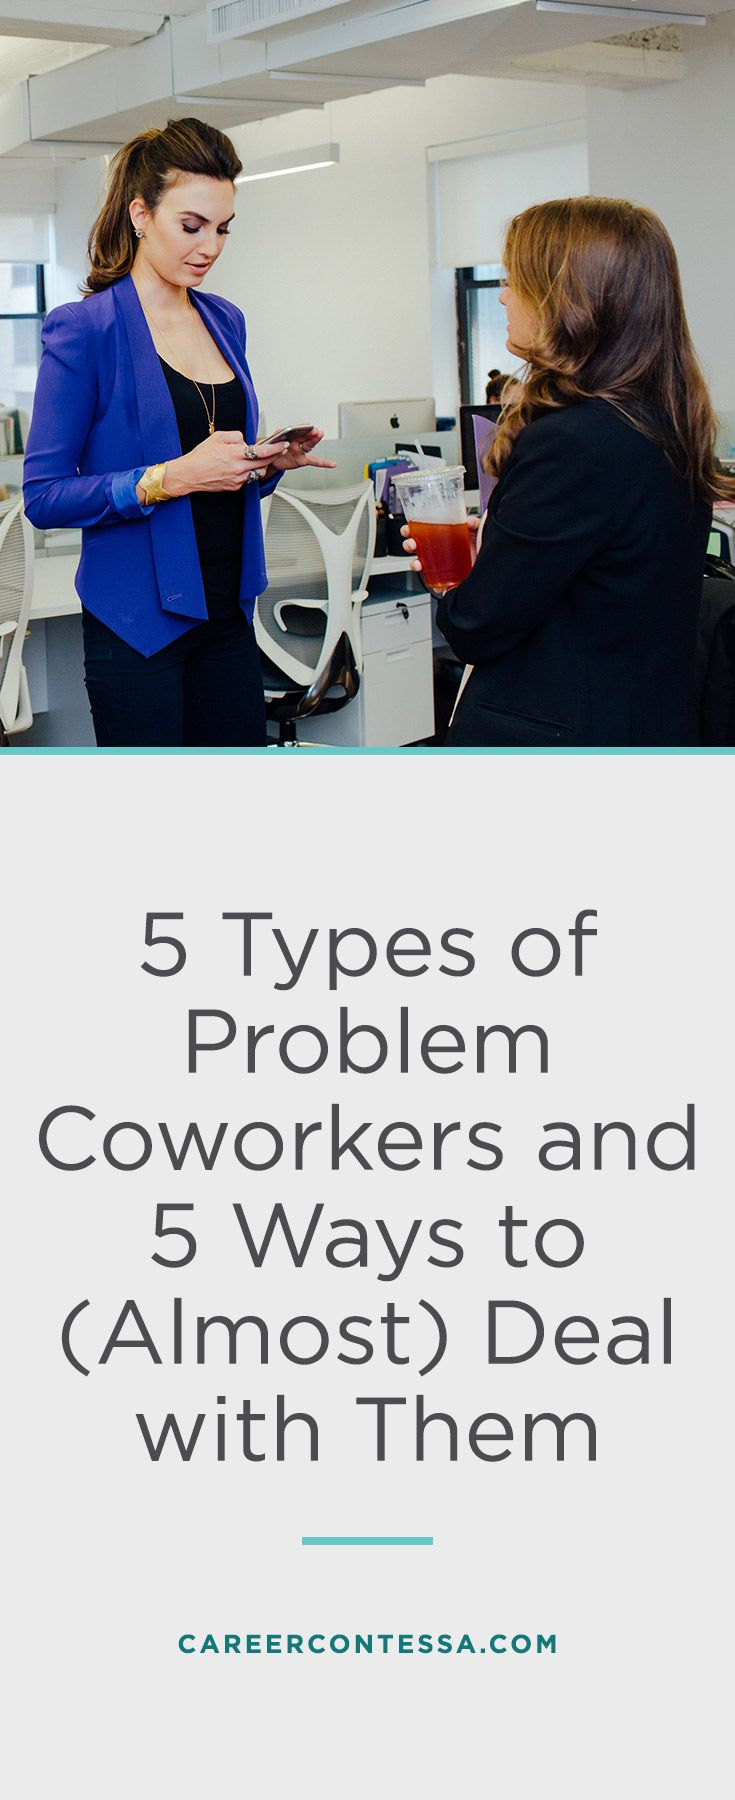 Ugh, no one likes dealing with problem coworkers. We know we've hid from office bullies before. But at work, when you don't love 'em but can't leave 'em, try these tricks to lessen the pain of annoying workplace personalities. Hopefully, your office doesn't have too many of these types of people, but if it does here's how to—almost, anyway—deal with working alongside them. | CareerContessa.com